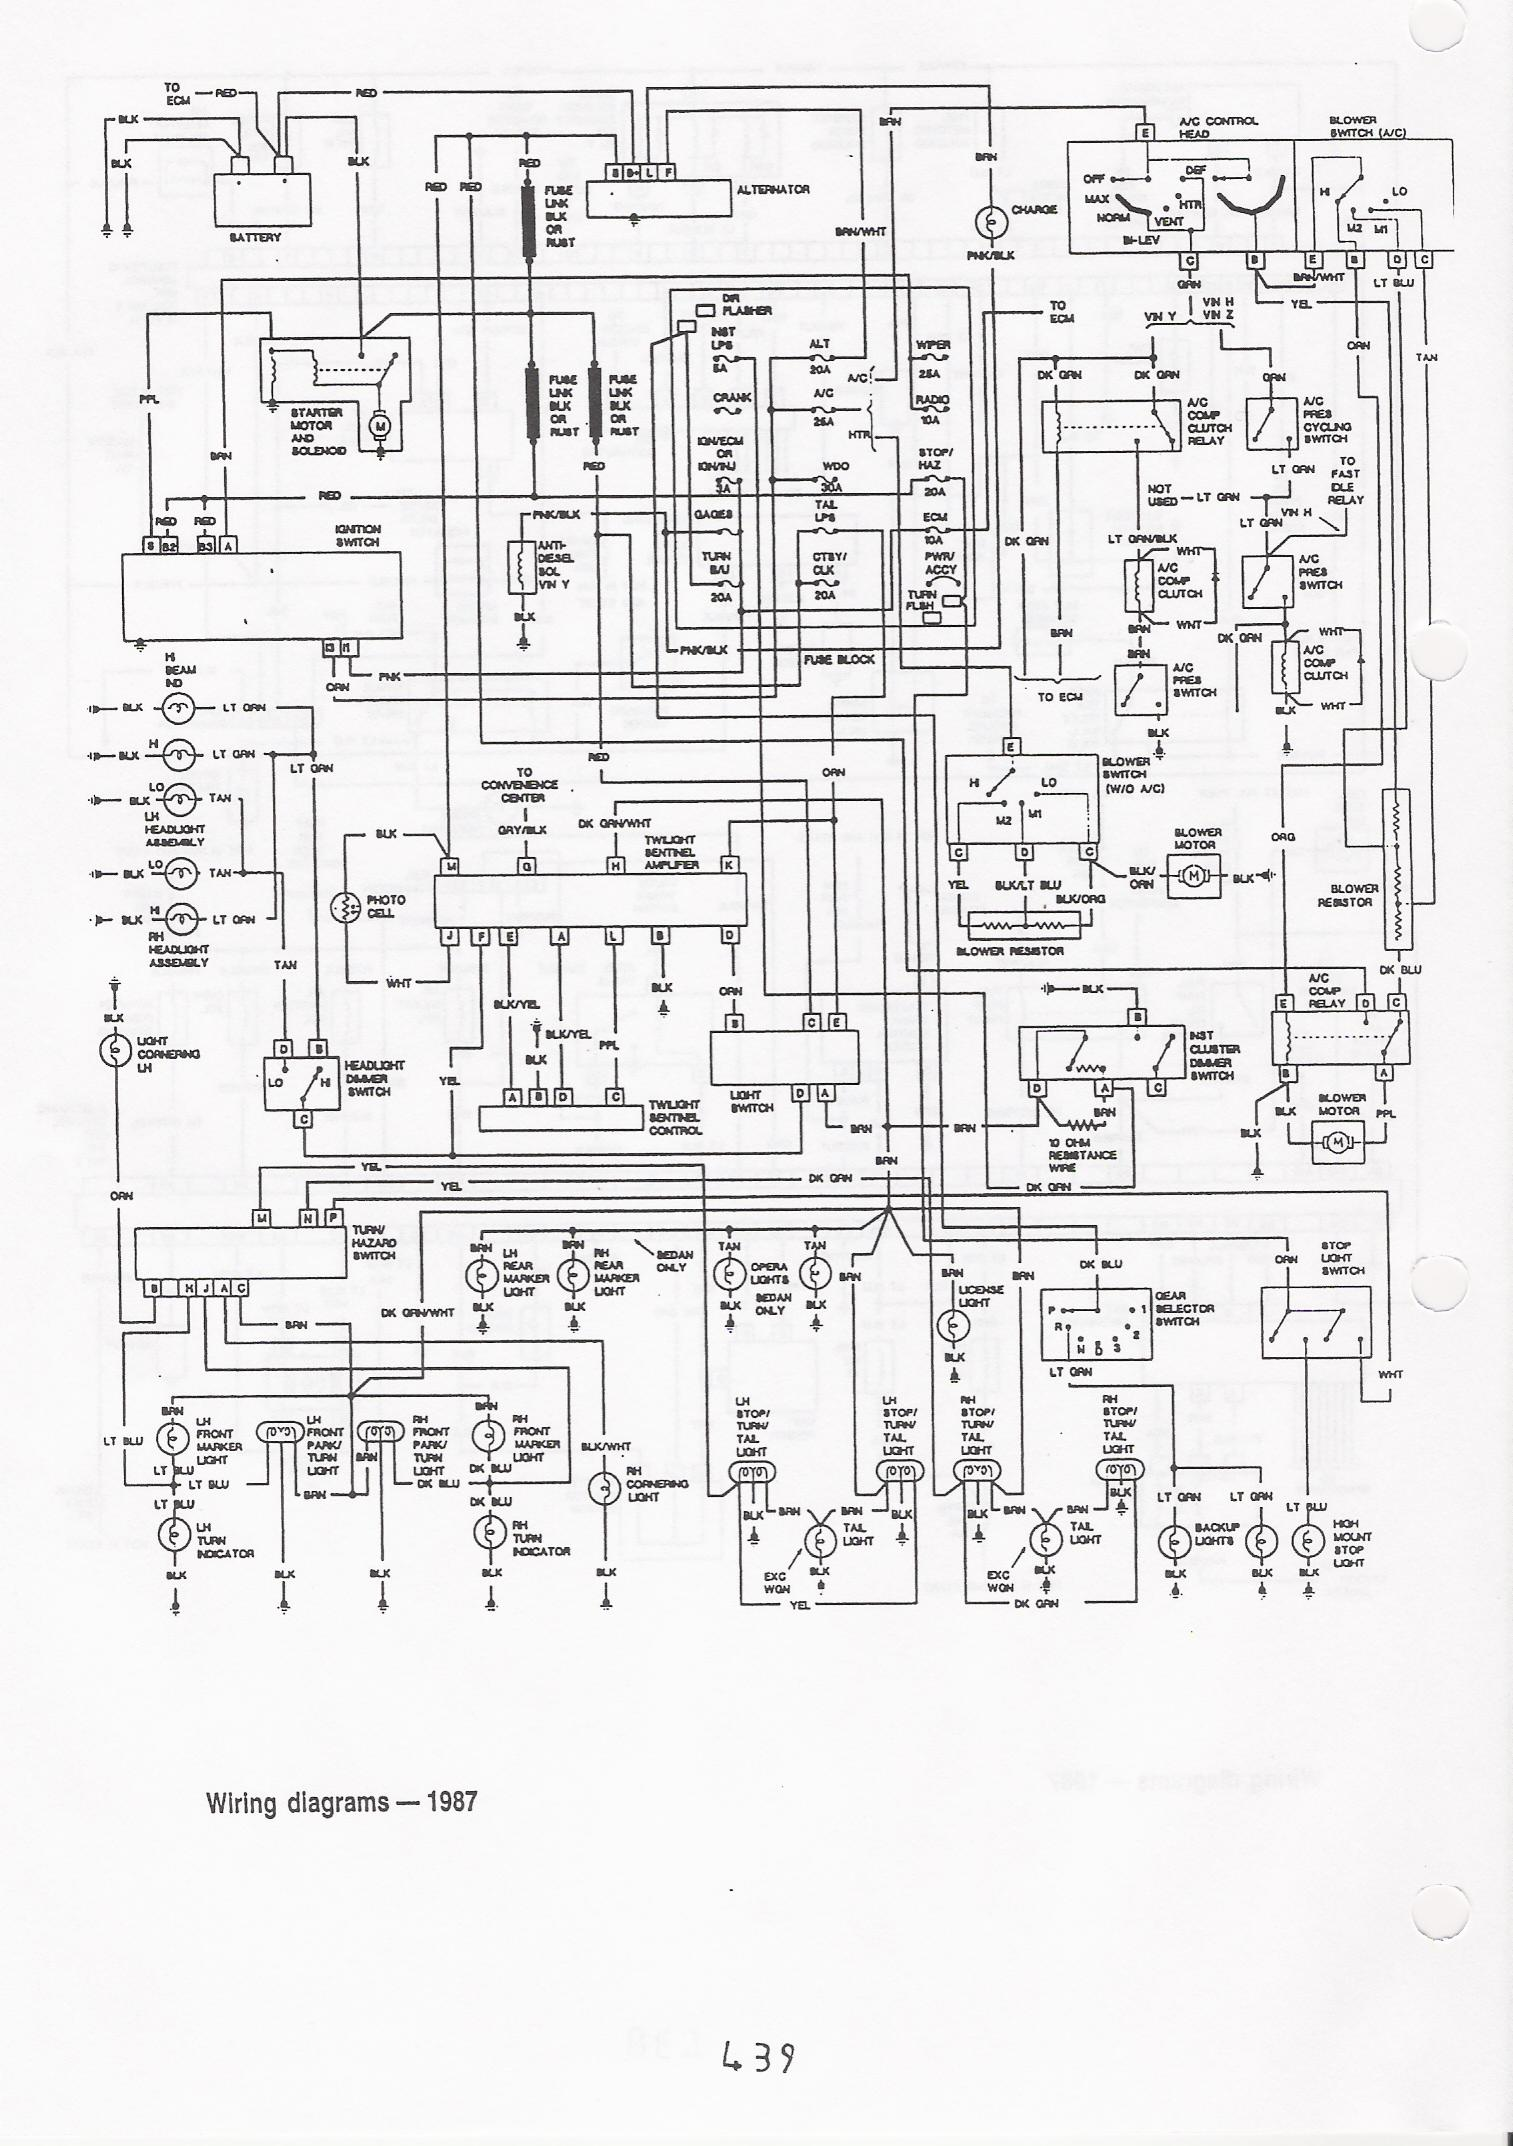 [DIAGRAM] 1987 Jeepanche Wiring Diagram FULL Version HD